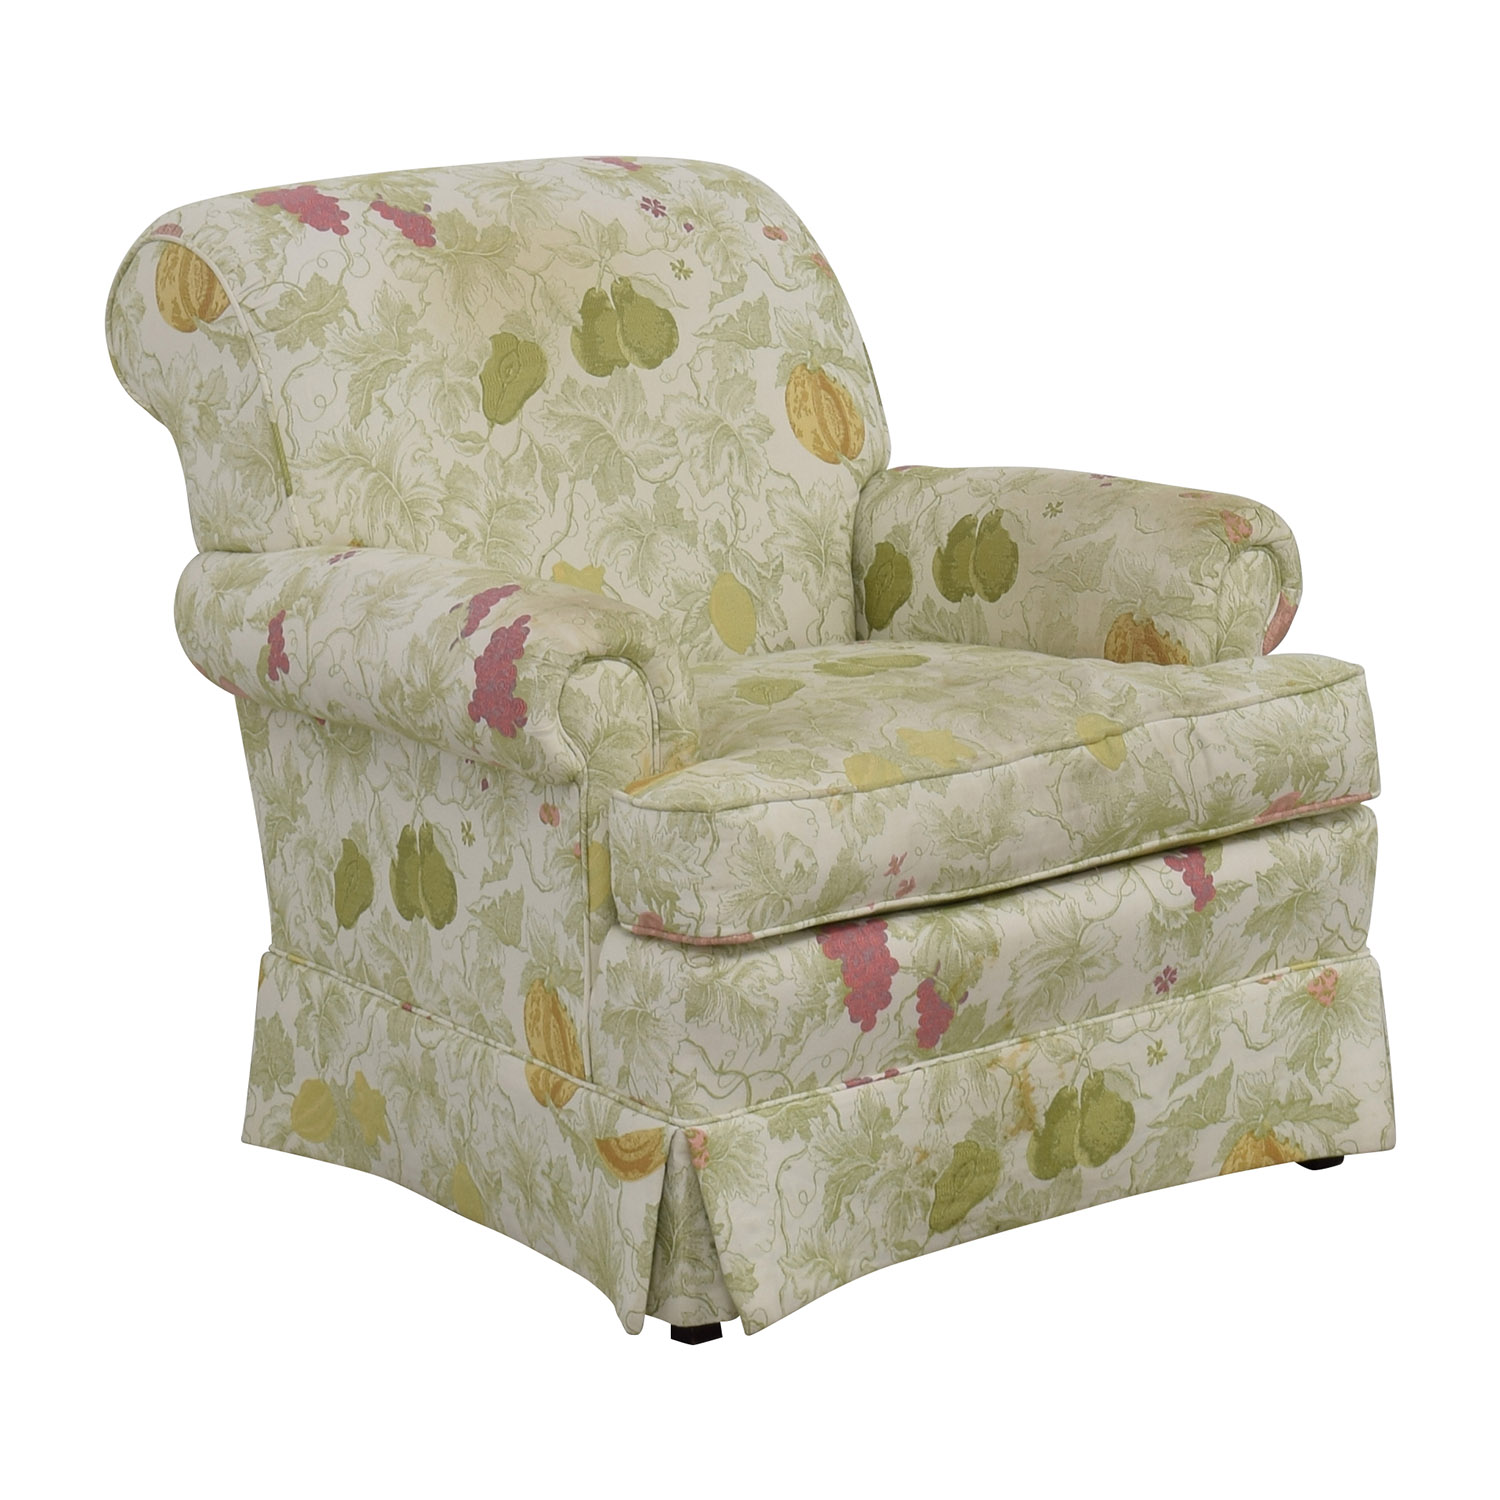 Sherrill Sherrill Fruit Patterned Accent Chair second hand